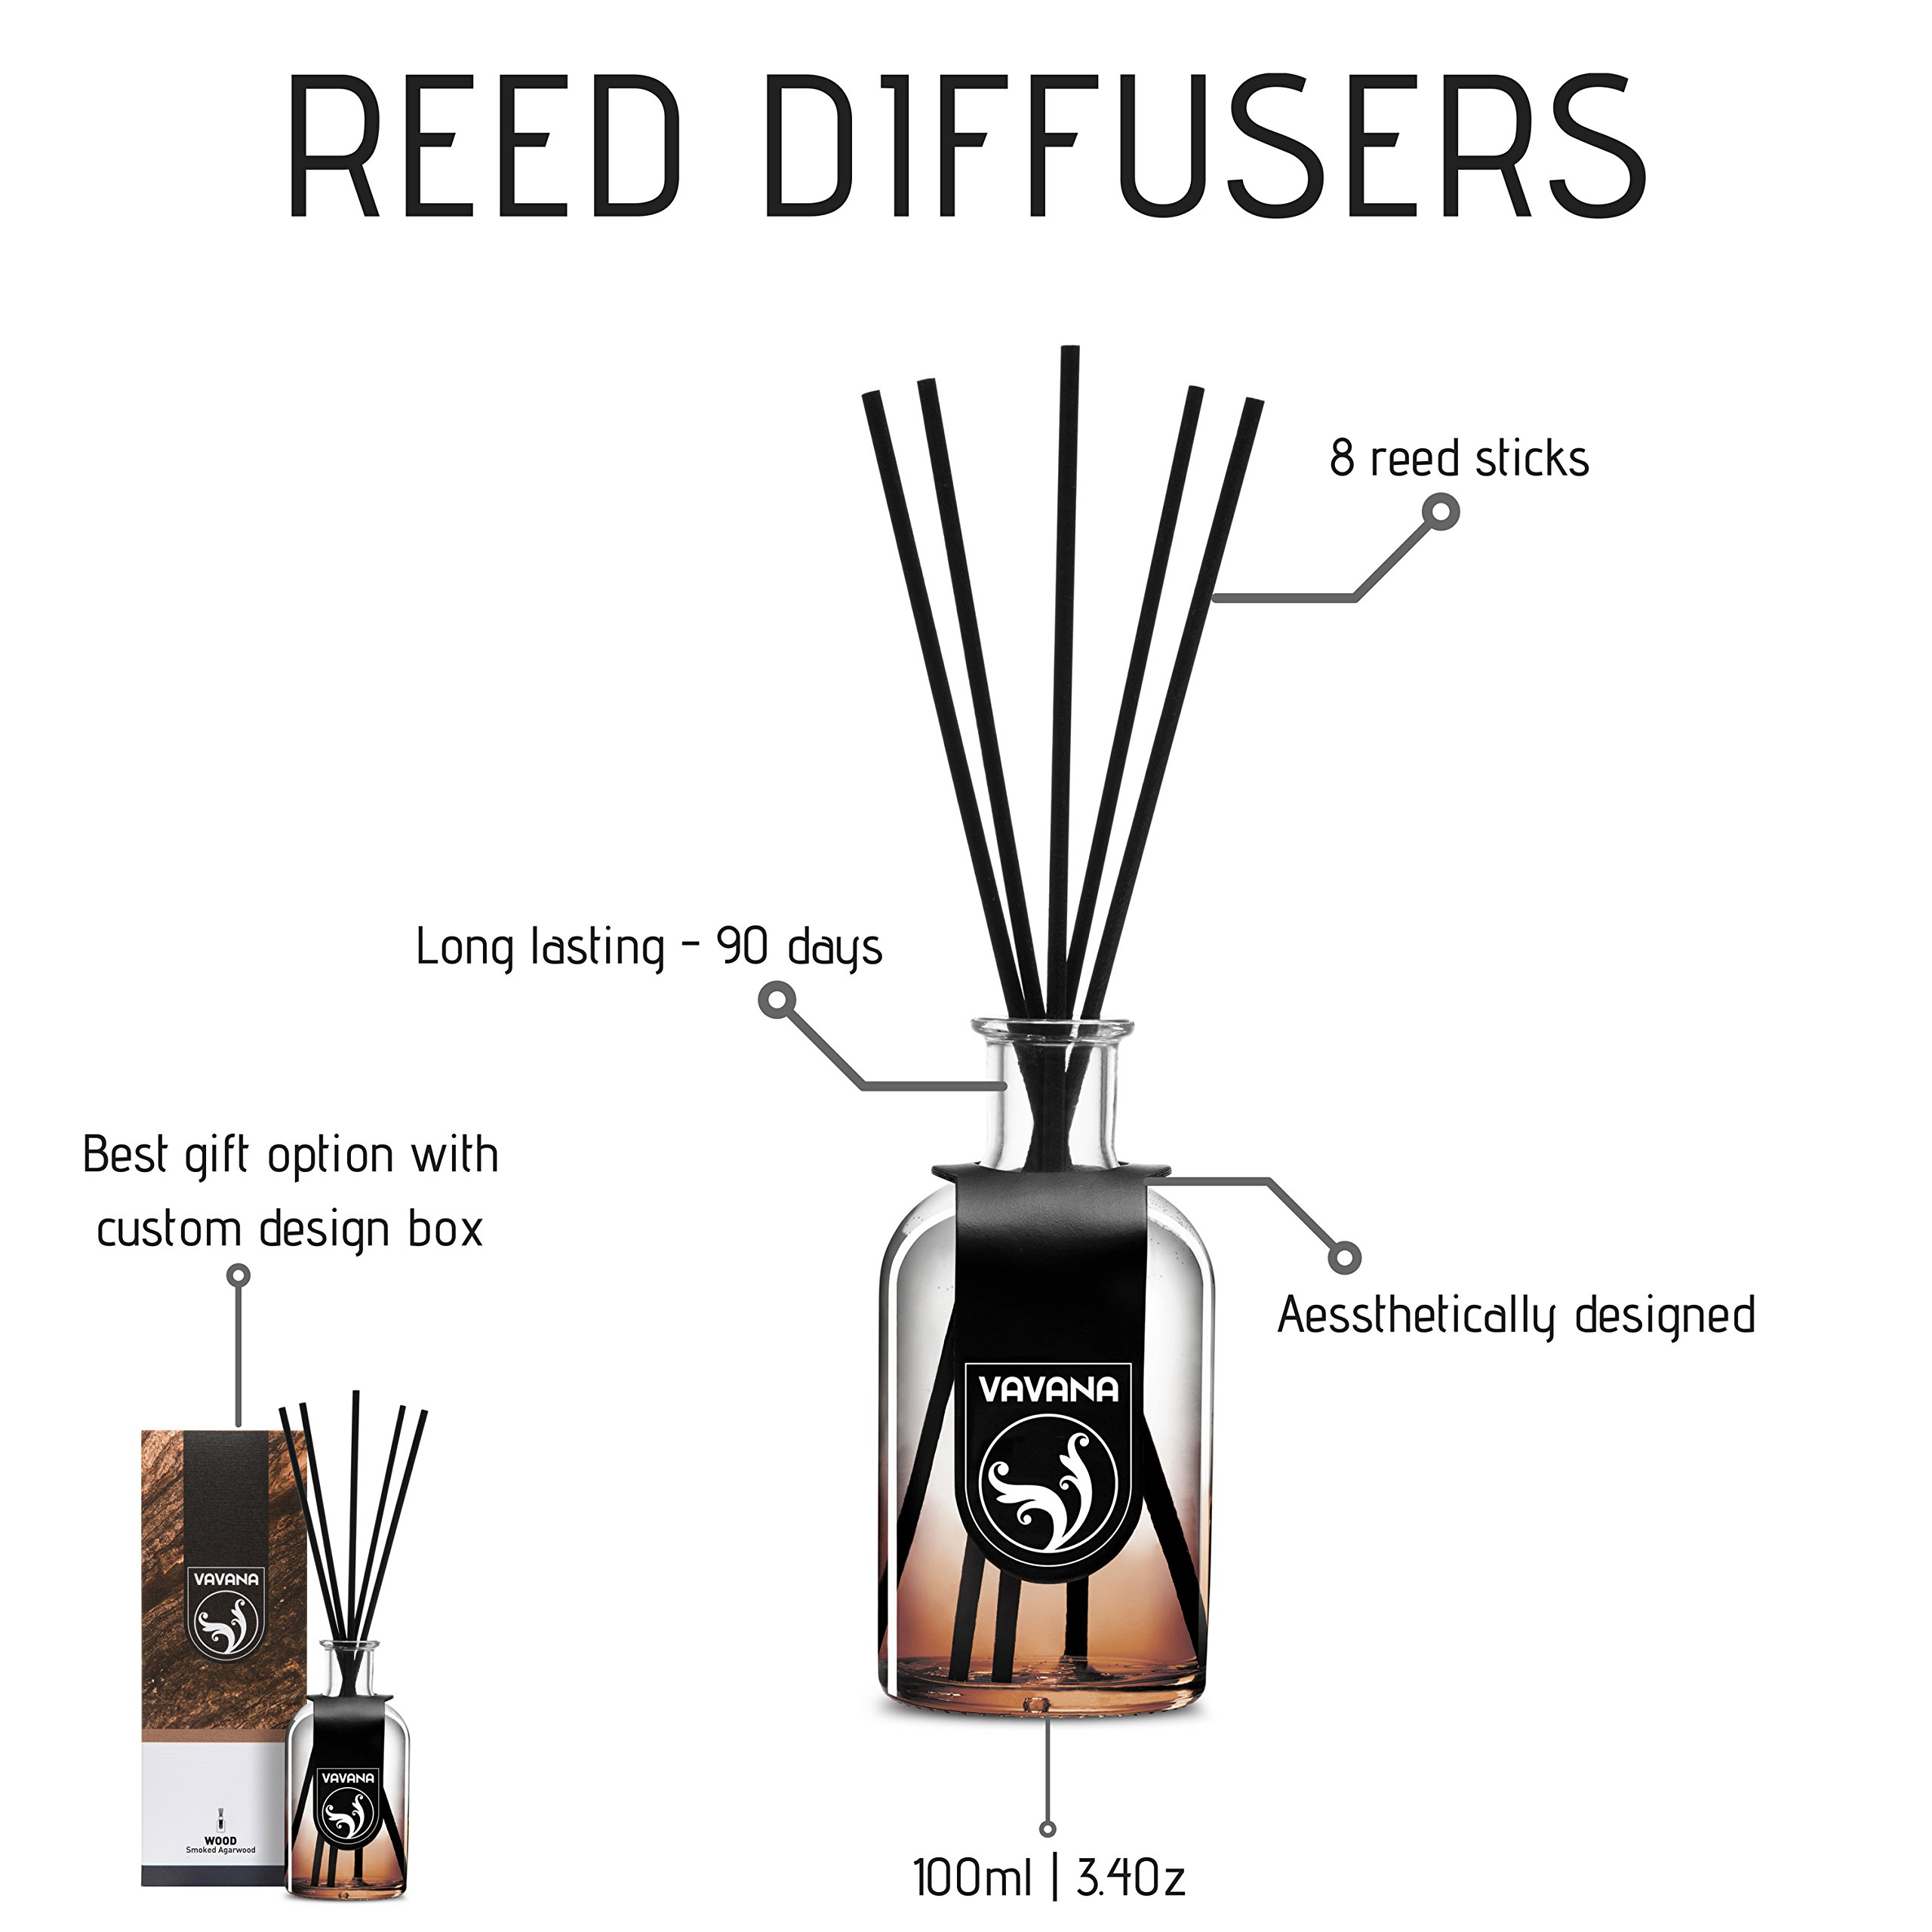 VAVANA Aromatherapy Diffuser Sticks   Reed Diffuser Set   Aromatic Home Fragrance Set   Essential Oil Diffuser Sticks, Made of Natural Scented Oils Blend   100 ML/3.4 OZ - 6 Pack (Smoked A.Wood) by vavana (Image #2)